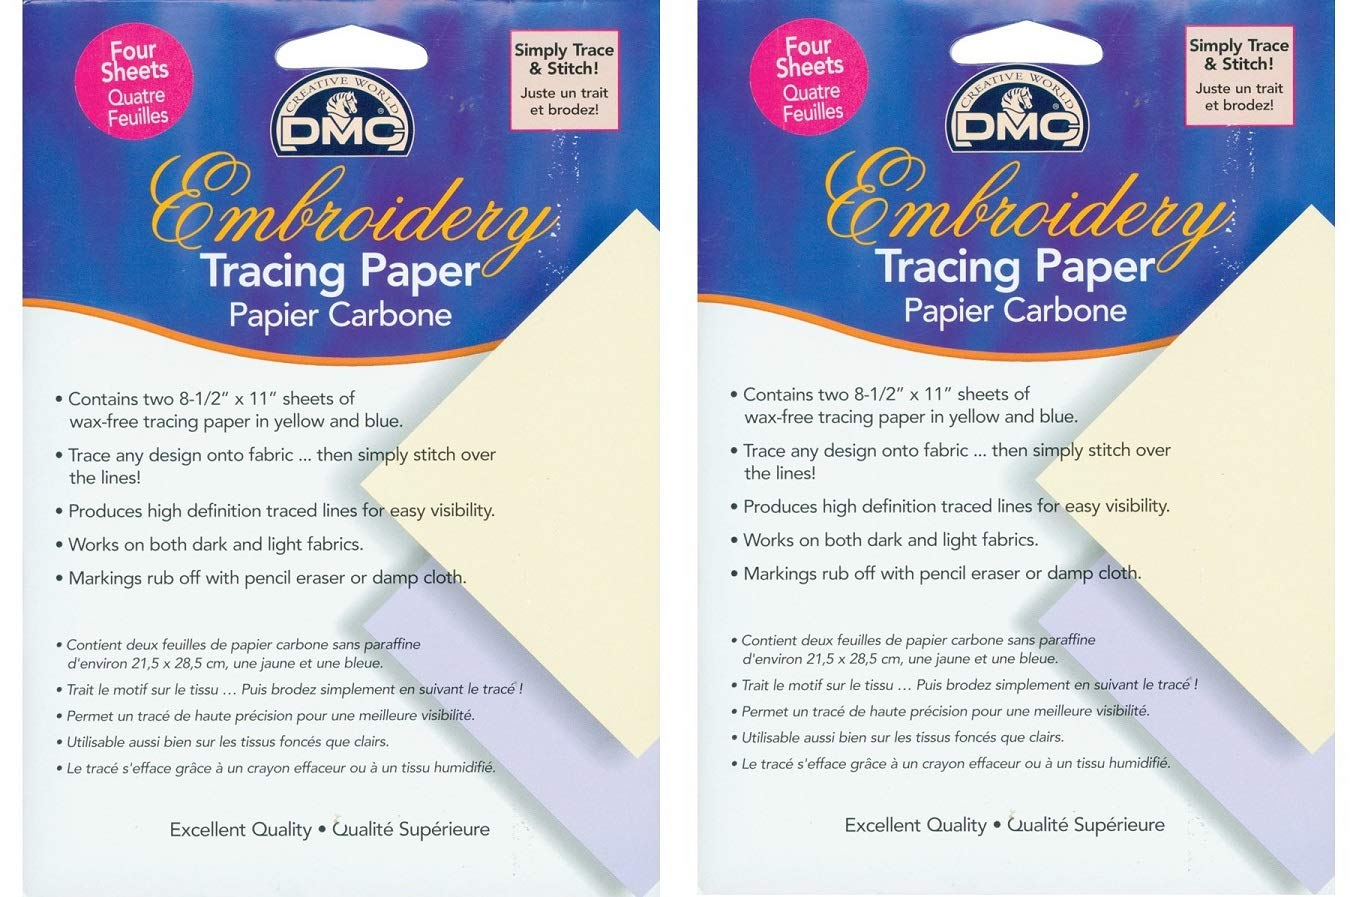 DMC U1541 Embroidery Tracing Paper 4-Sheets 3 Pаck Yellow//Blue